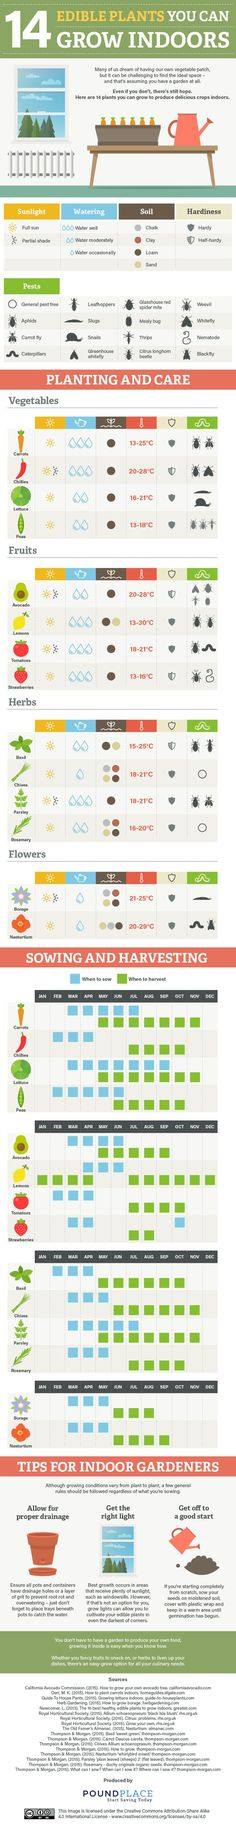 Indoor Vegetable Gardening 14 Edible Plants You Can Grow Indoors - No space for a garden? Try indoor gardening! These Indoor Gardening Infographics aim to inspire indoor gardening. Indoor Gardening tips